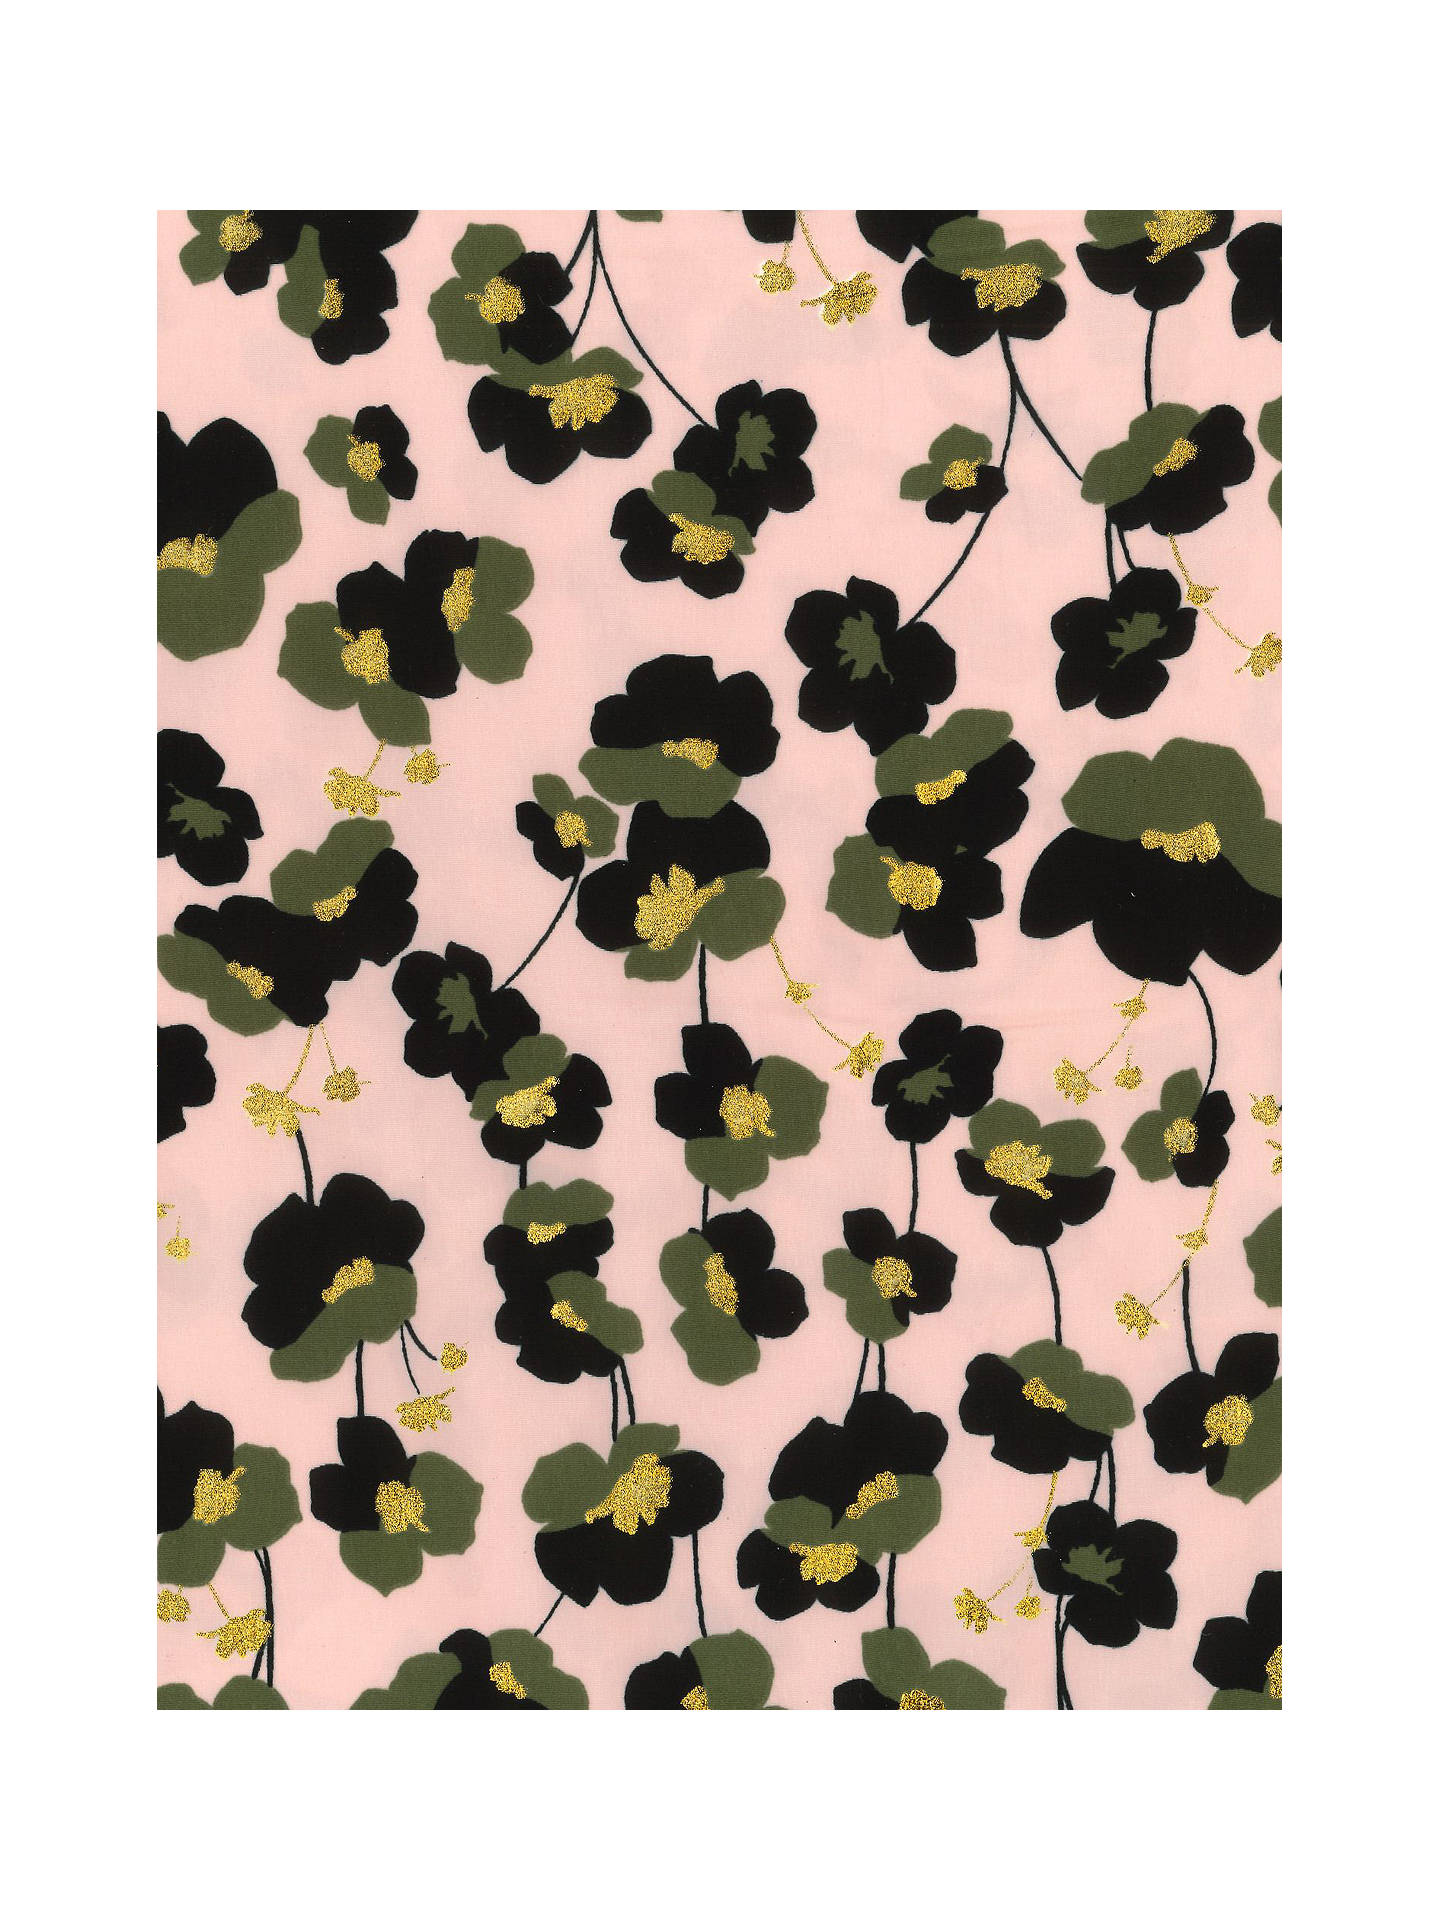 Buy Oddies Textiles Khaki & Gold Floral Fabric, Pink Rose Online at johnlewis.com